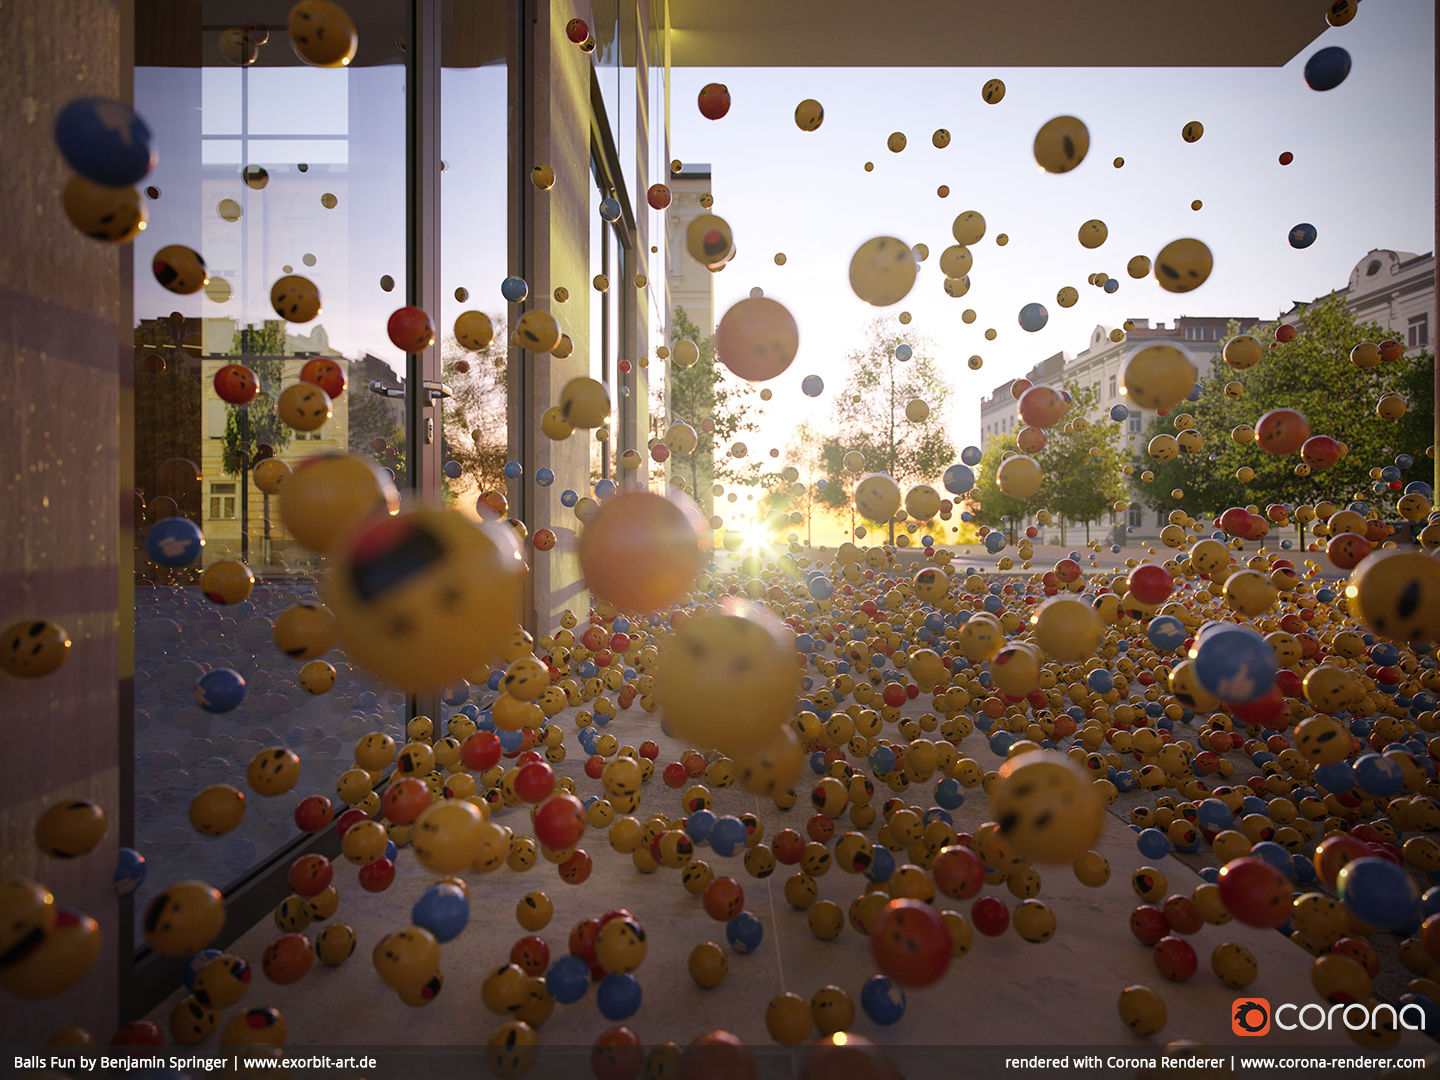 Balls Fun by Benjamin Springer, EXORBITART - Cinema 4D